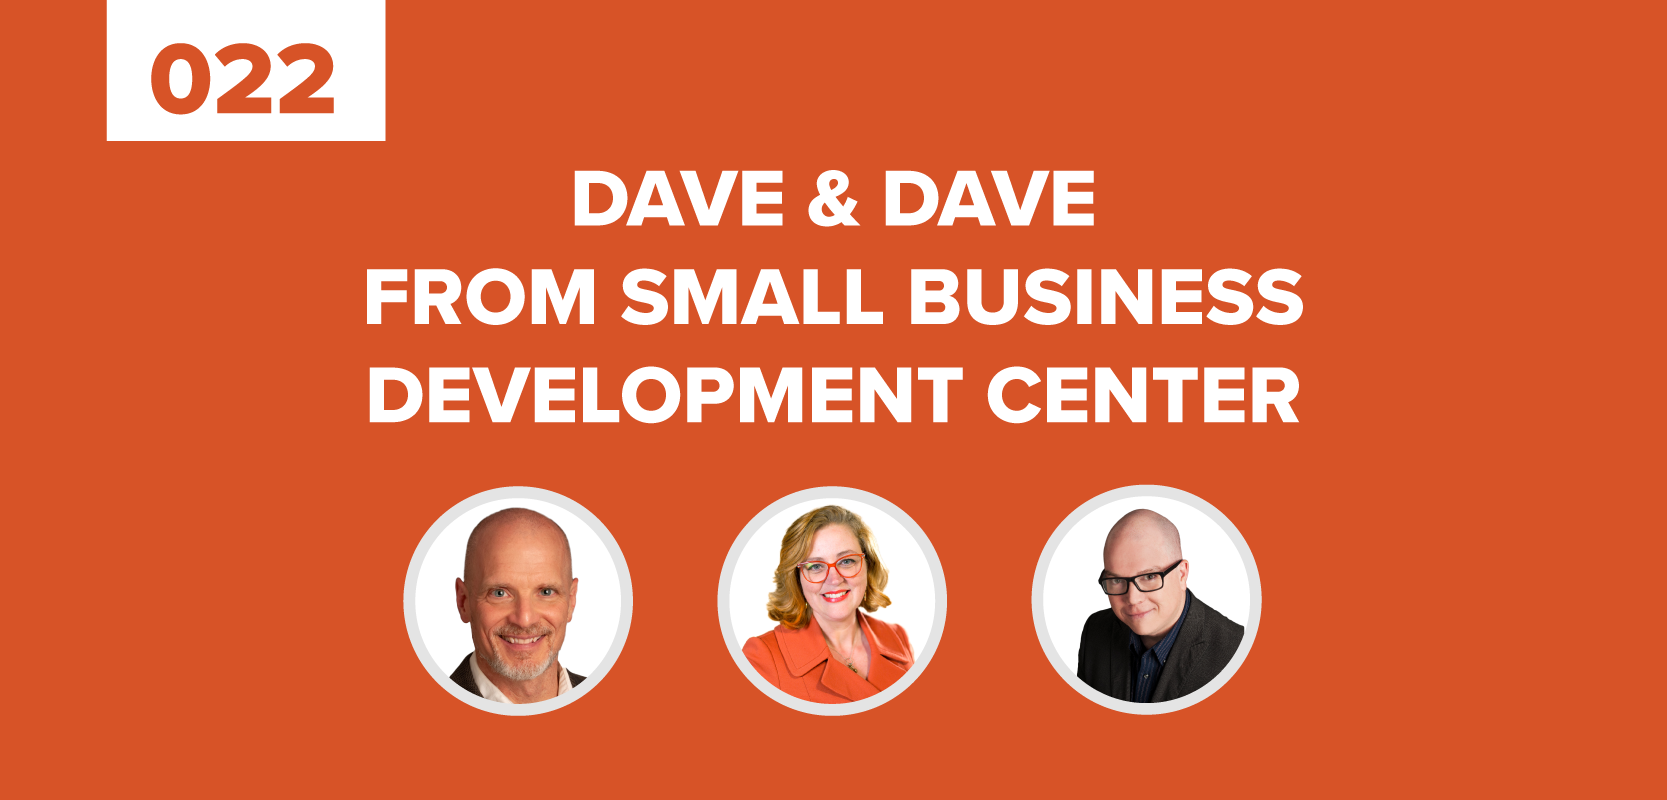 Dave & Dave From Small Business Development Center